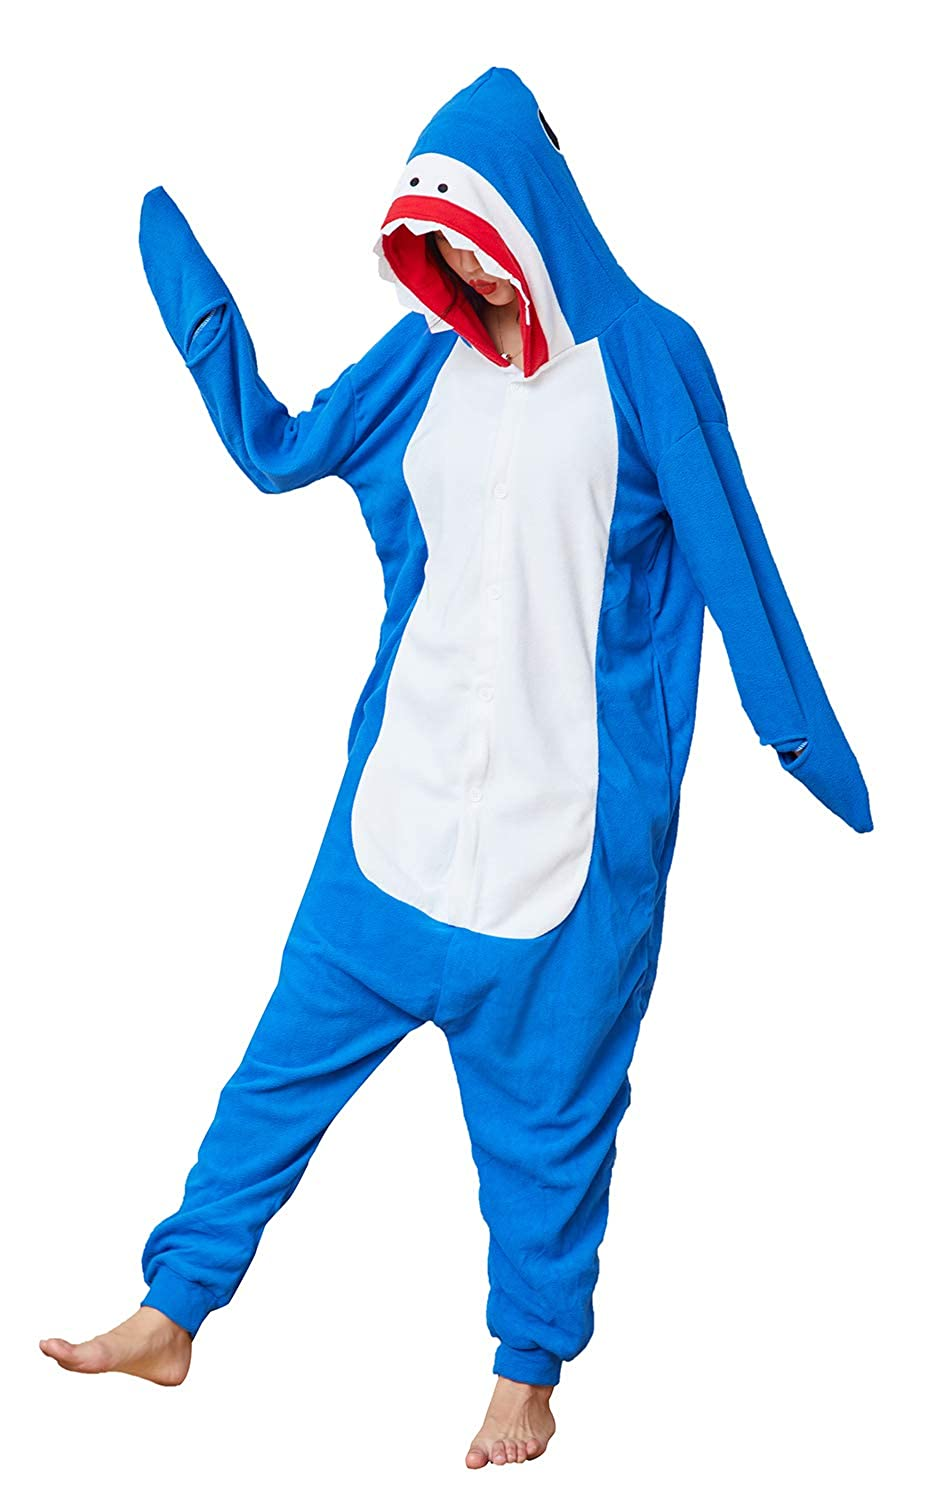 Sharky Shark Onesies Pajamas,Adult Animal Cosplay Costumes for Women Men